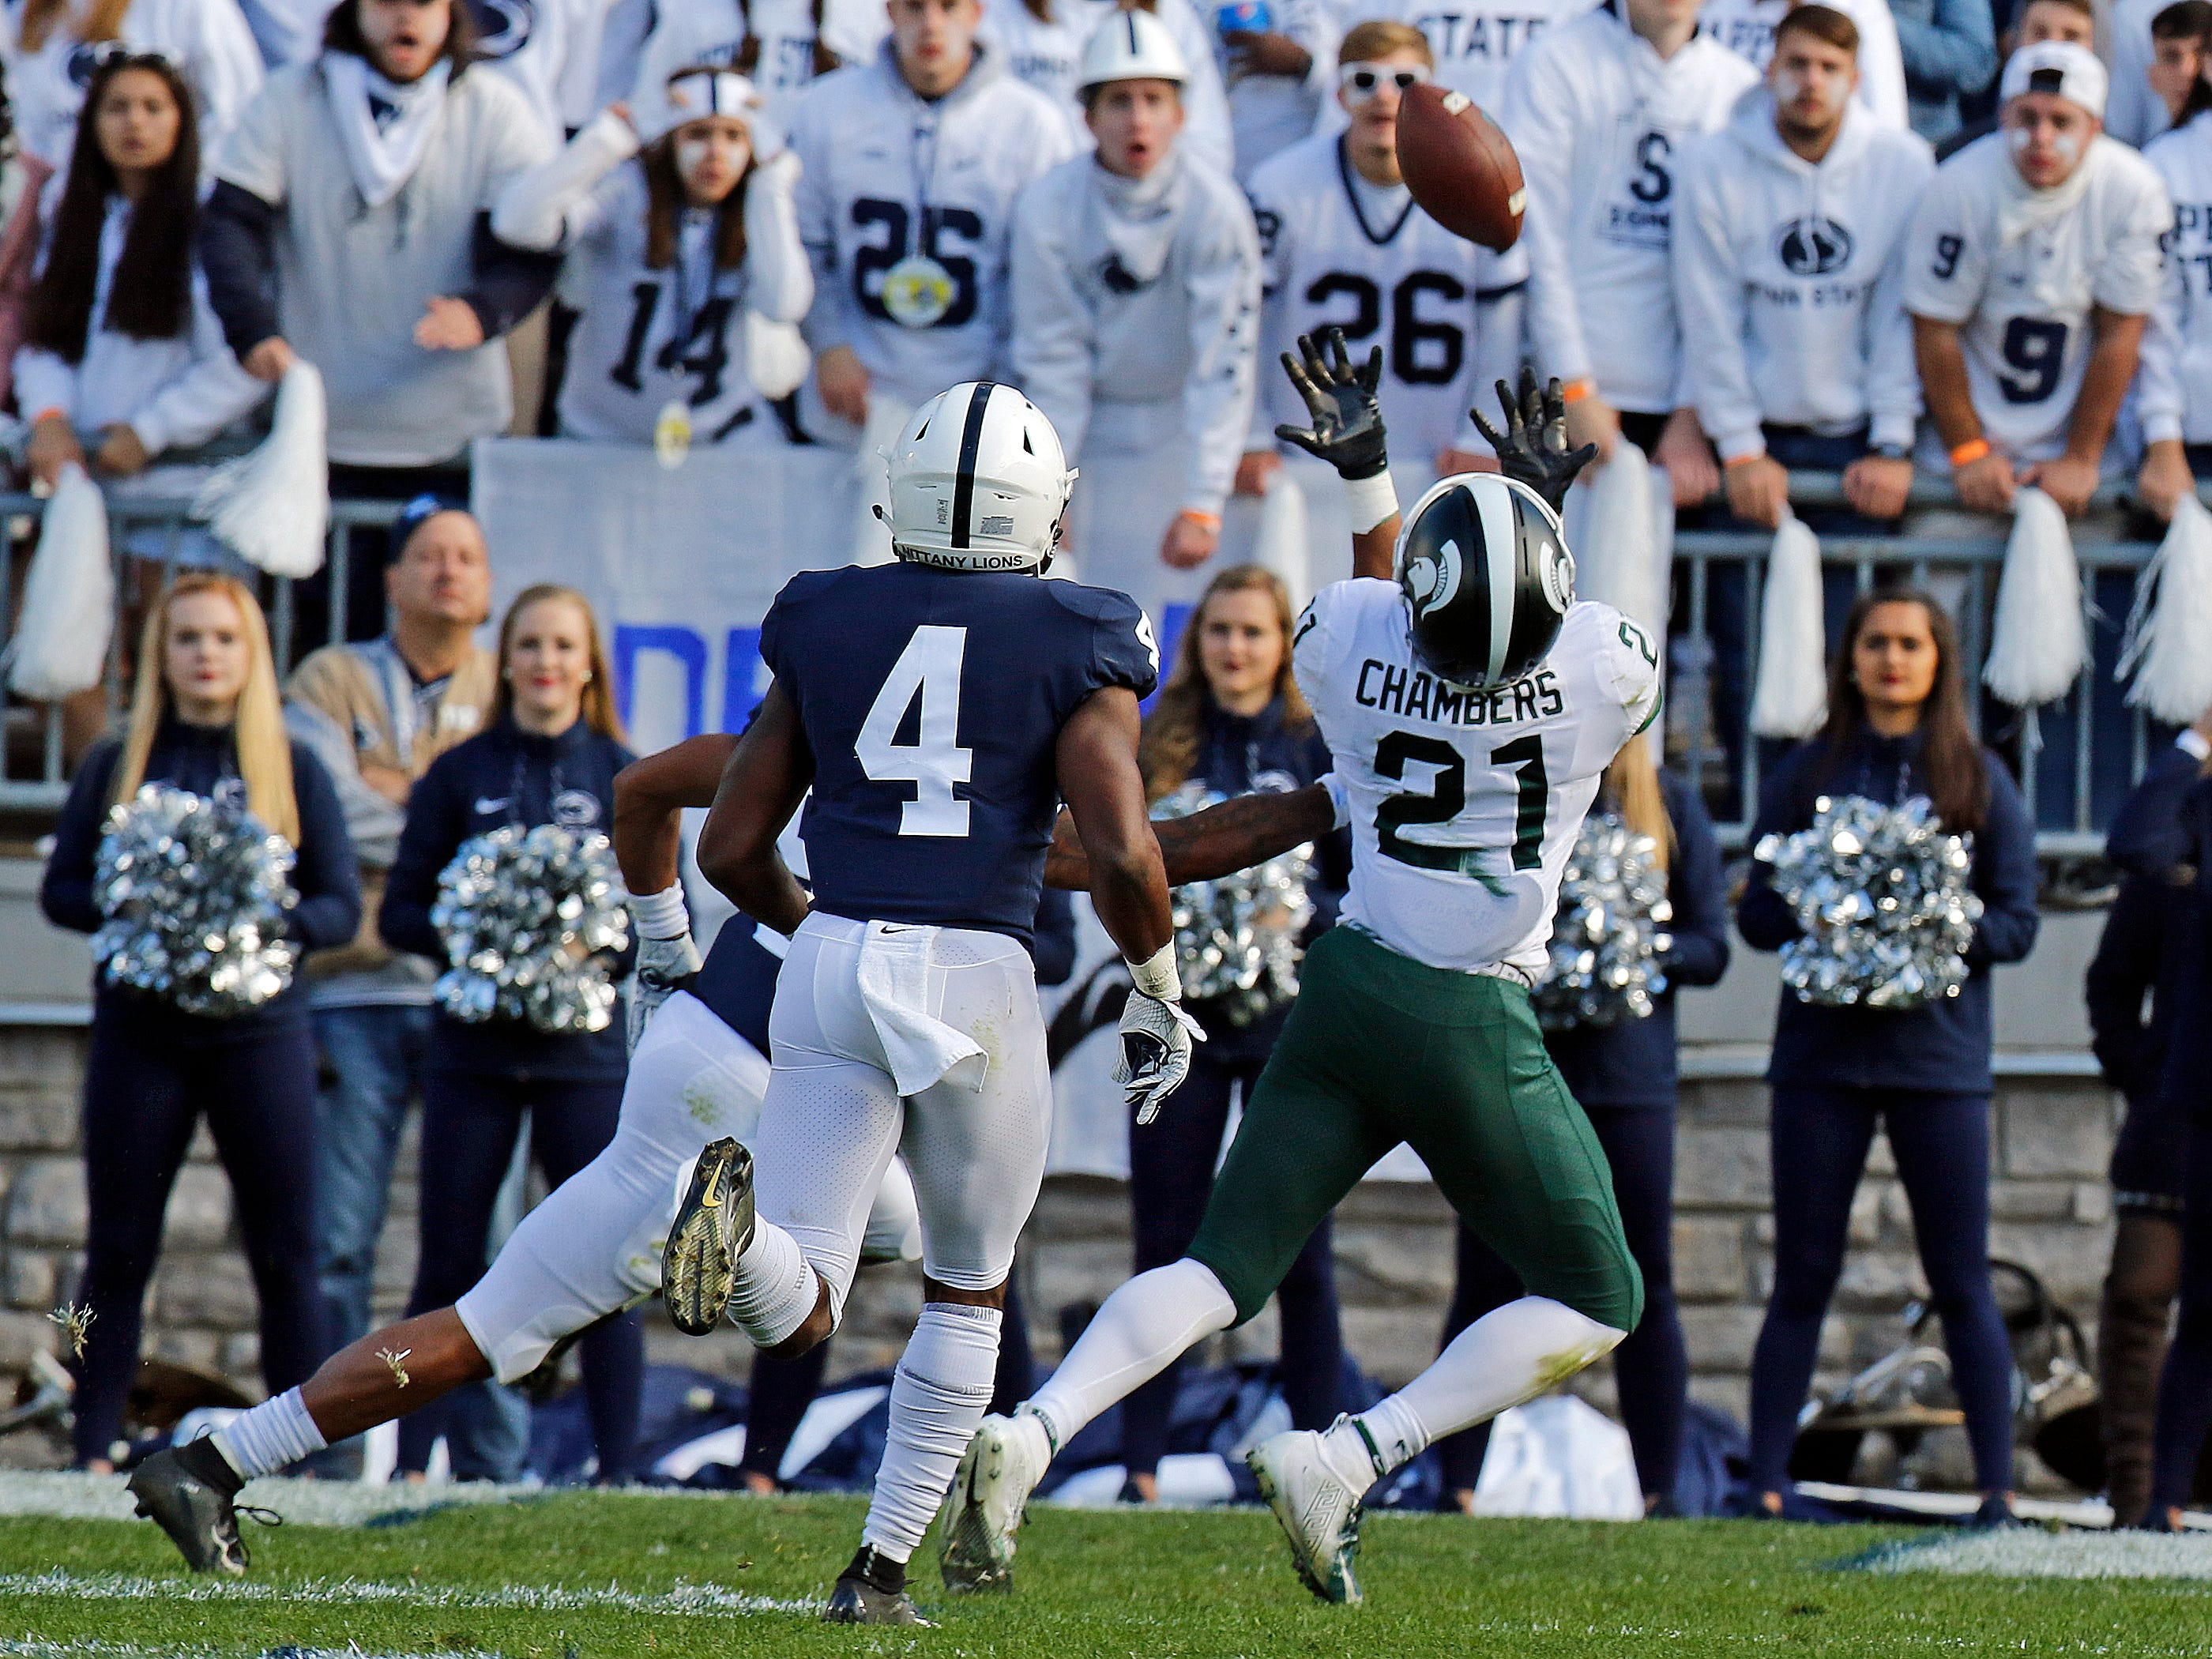 Cam Chambers #21 of the Michigan State Spartans pulls in a catch against Nick Scott #4 of the Penn State Nittany Lions on October 13, 2018 at Beaver Stadium in State College, Pennsylvania.